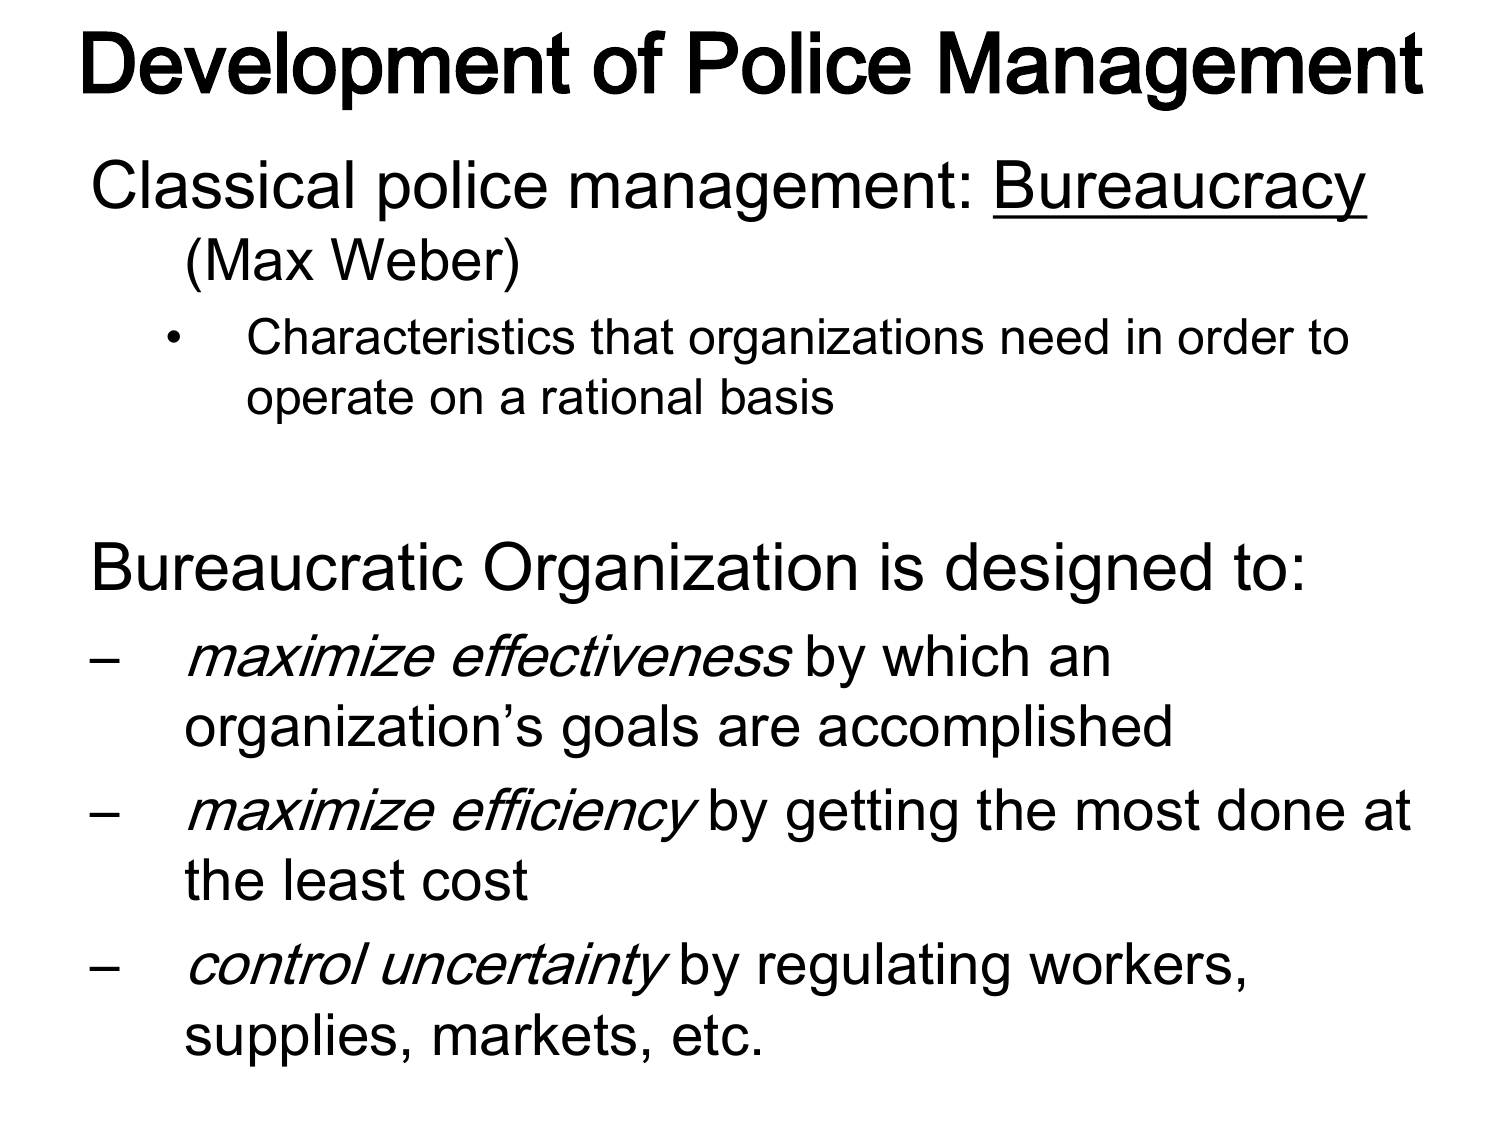 what are the characteristics of bureaucracy